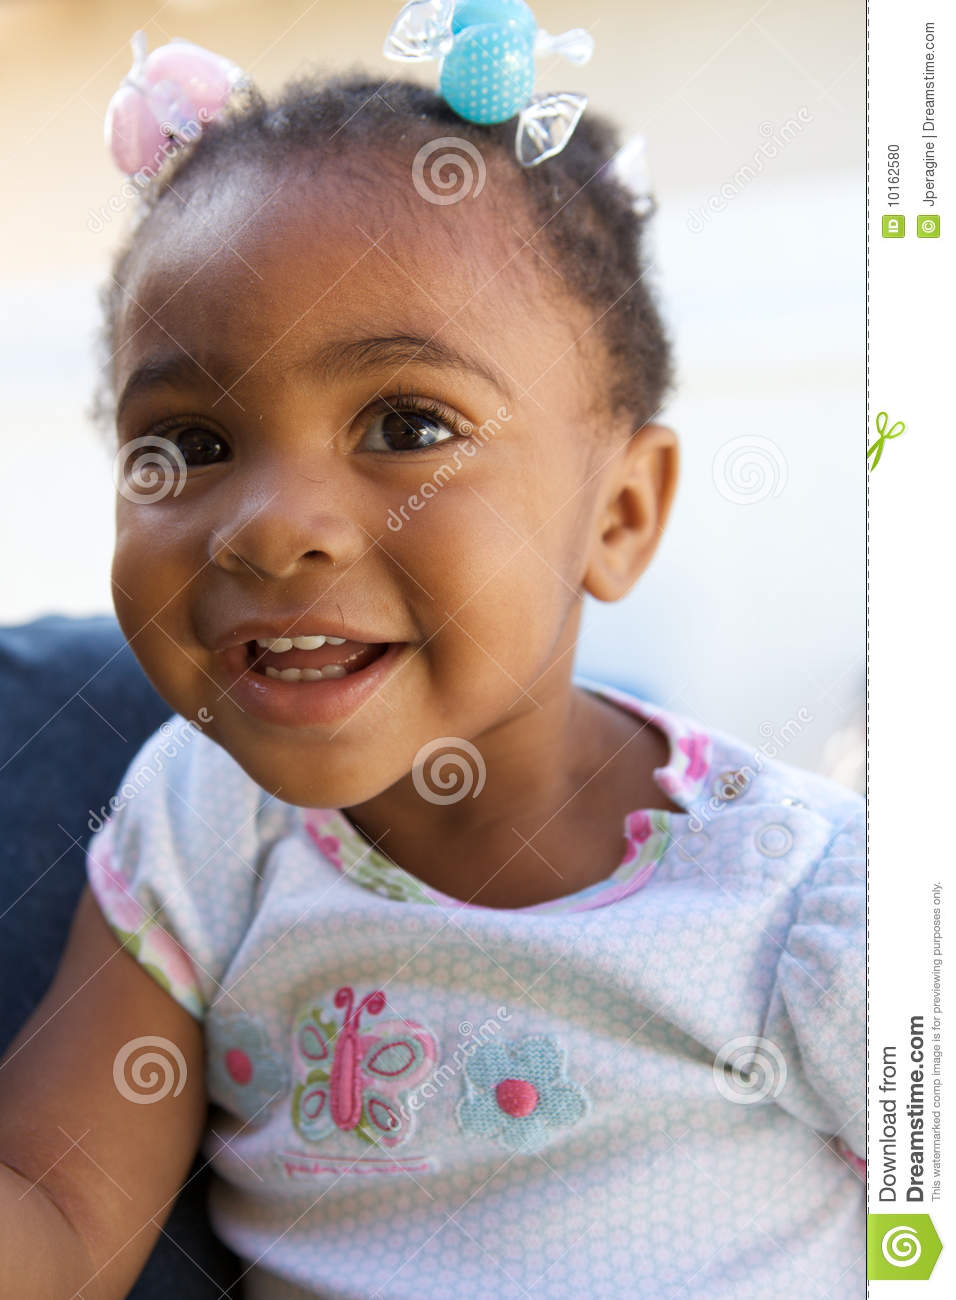 A Beautiful African American Baby Smiling Stock Photo Image 10162580